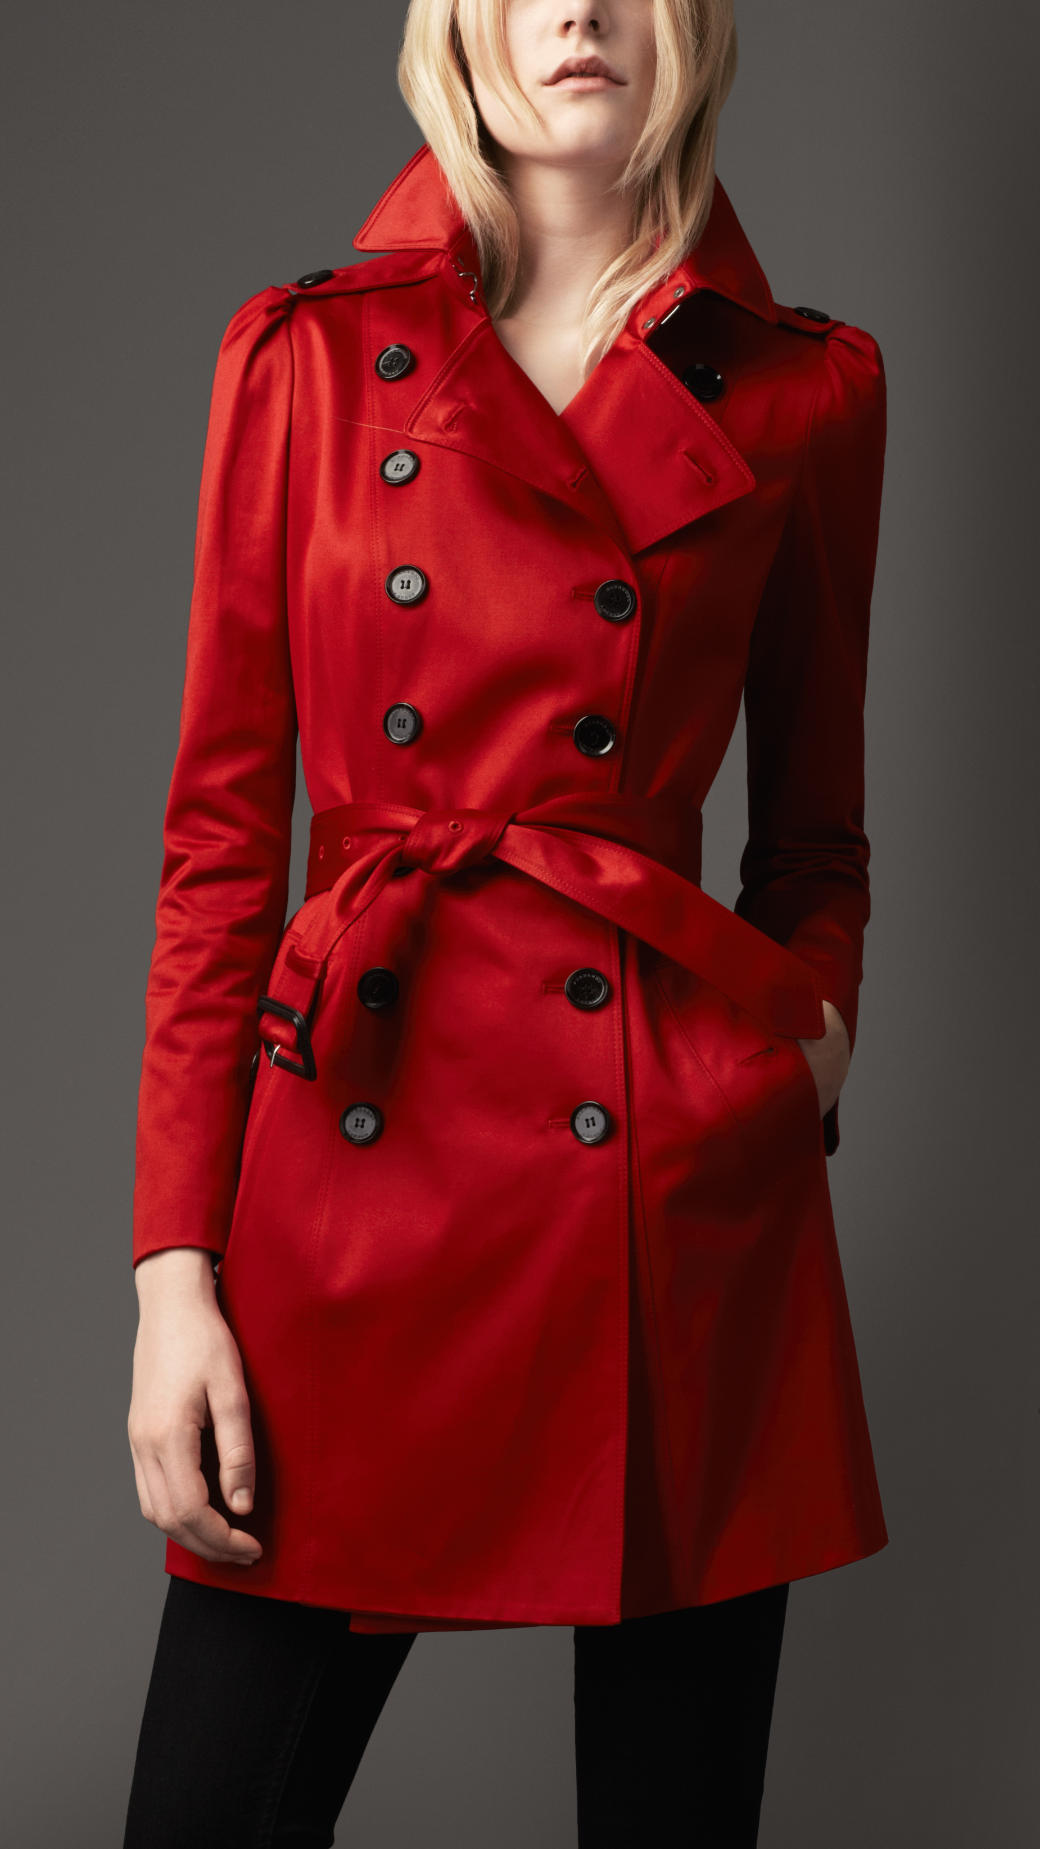 Burberry Midlength Stretchcotton Puff Sleeve Trench Coat